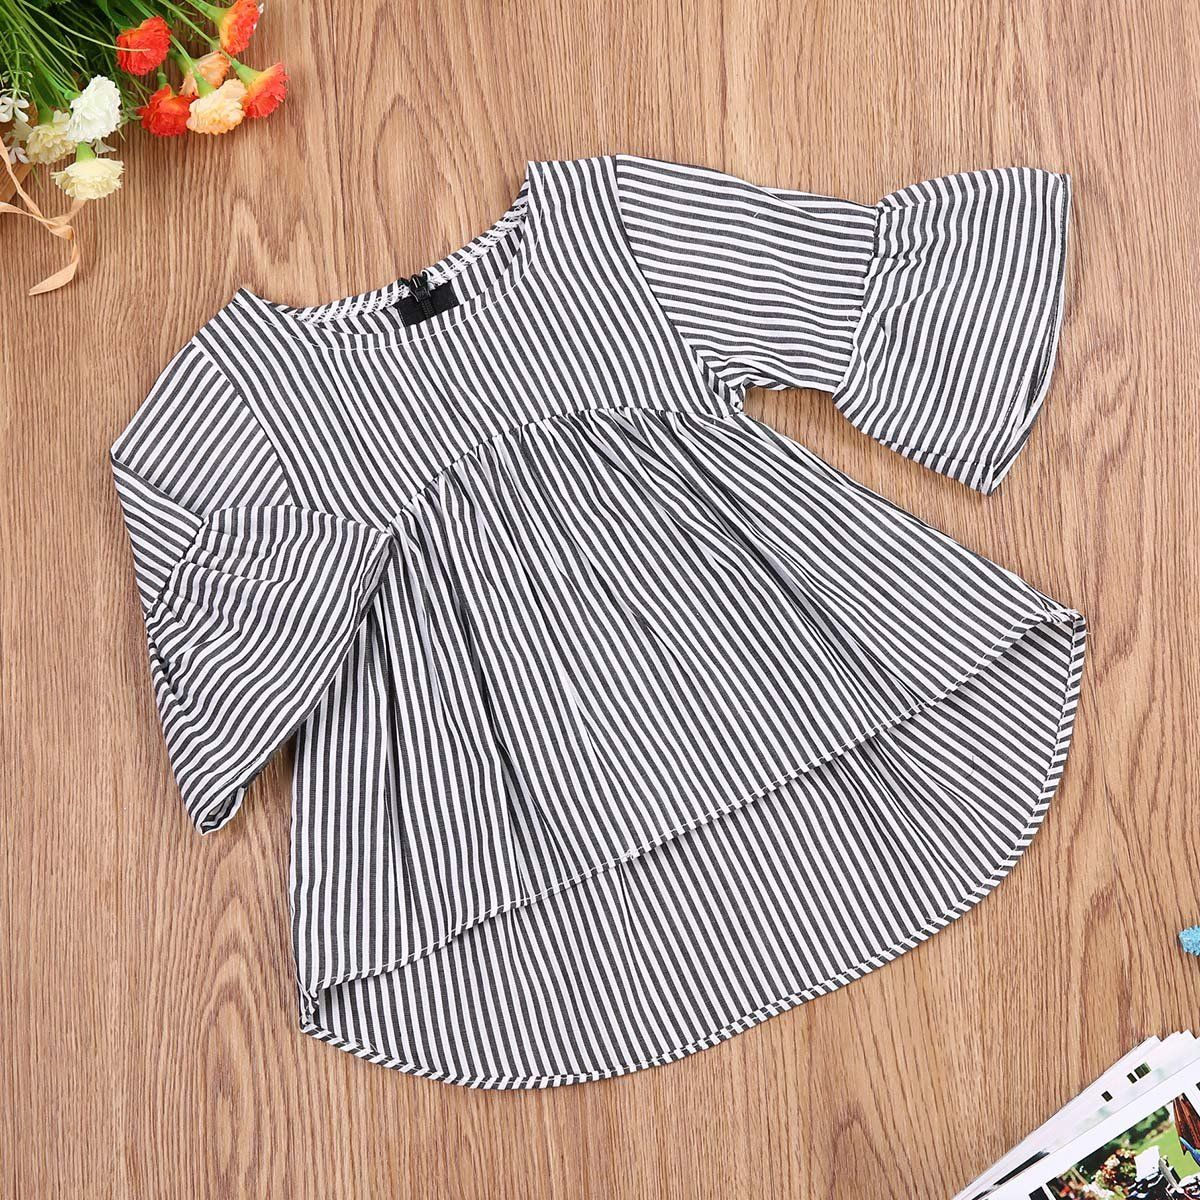 Casual Kids Baby Girls Clothes Collar Bowknot Long Sleeve Bottoming Tops Blouse